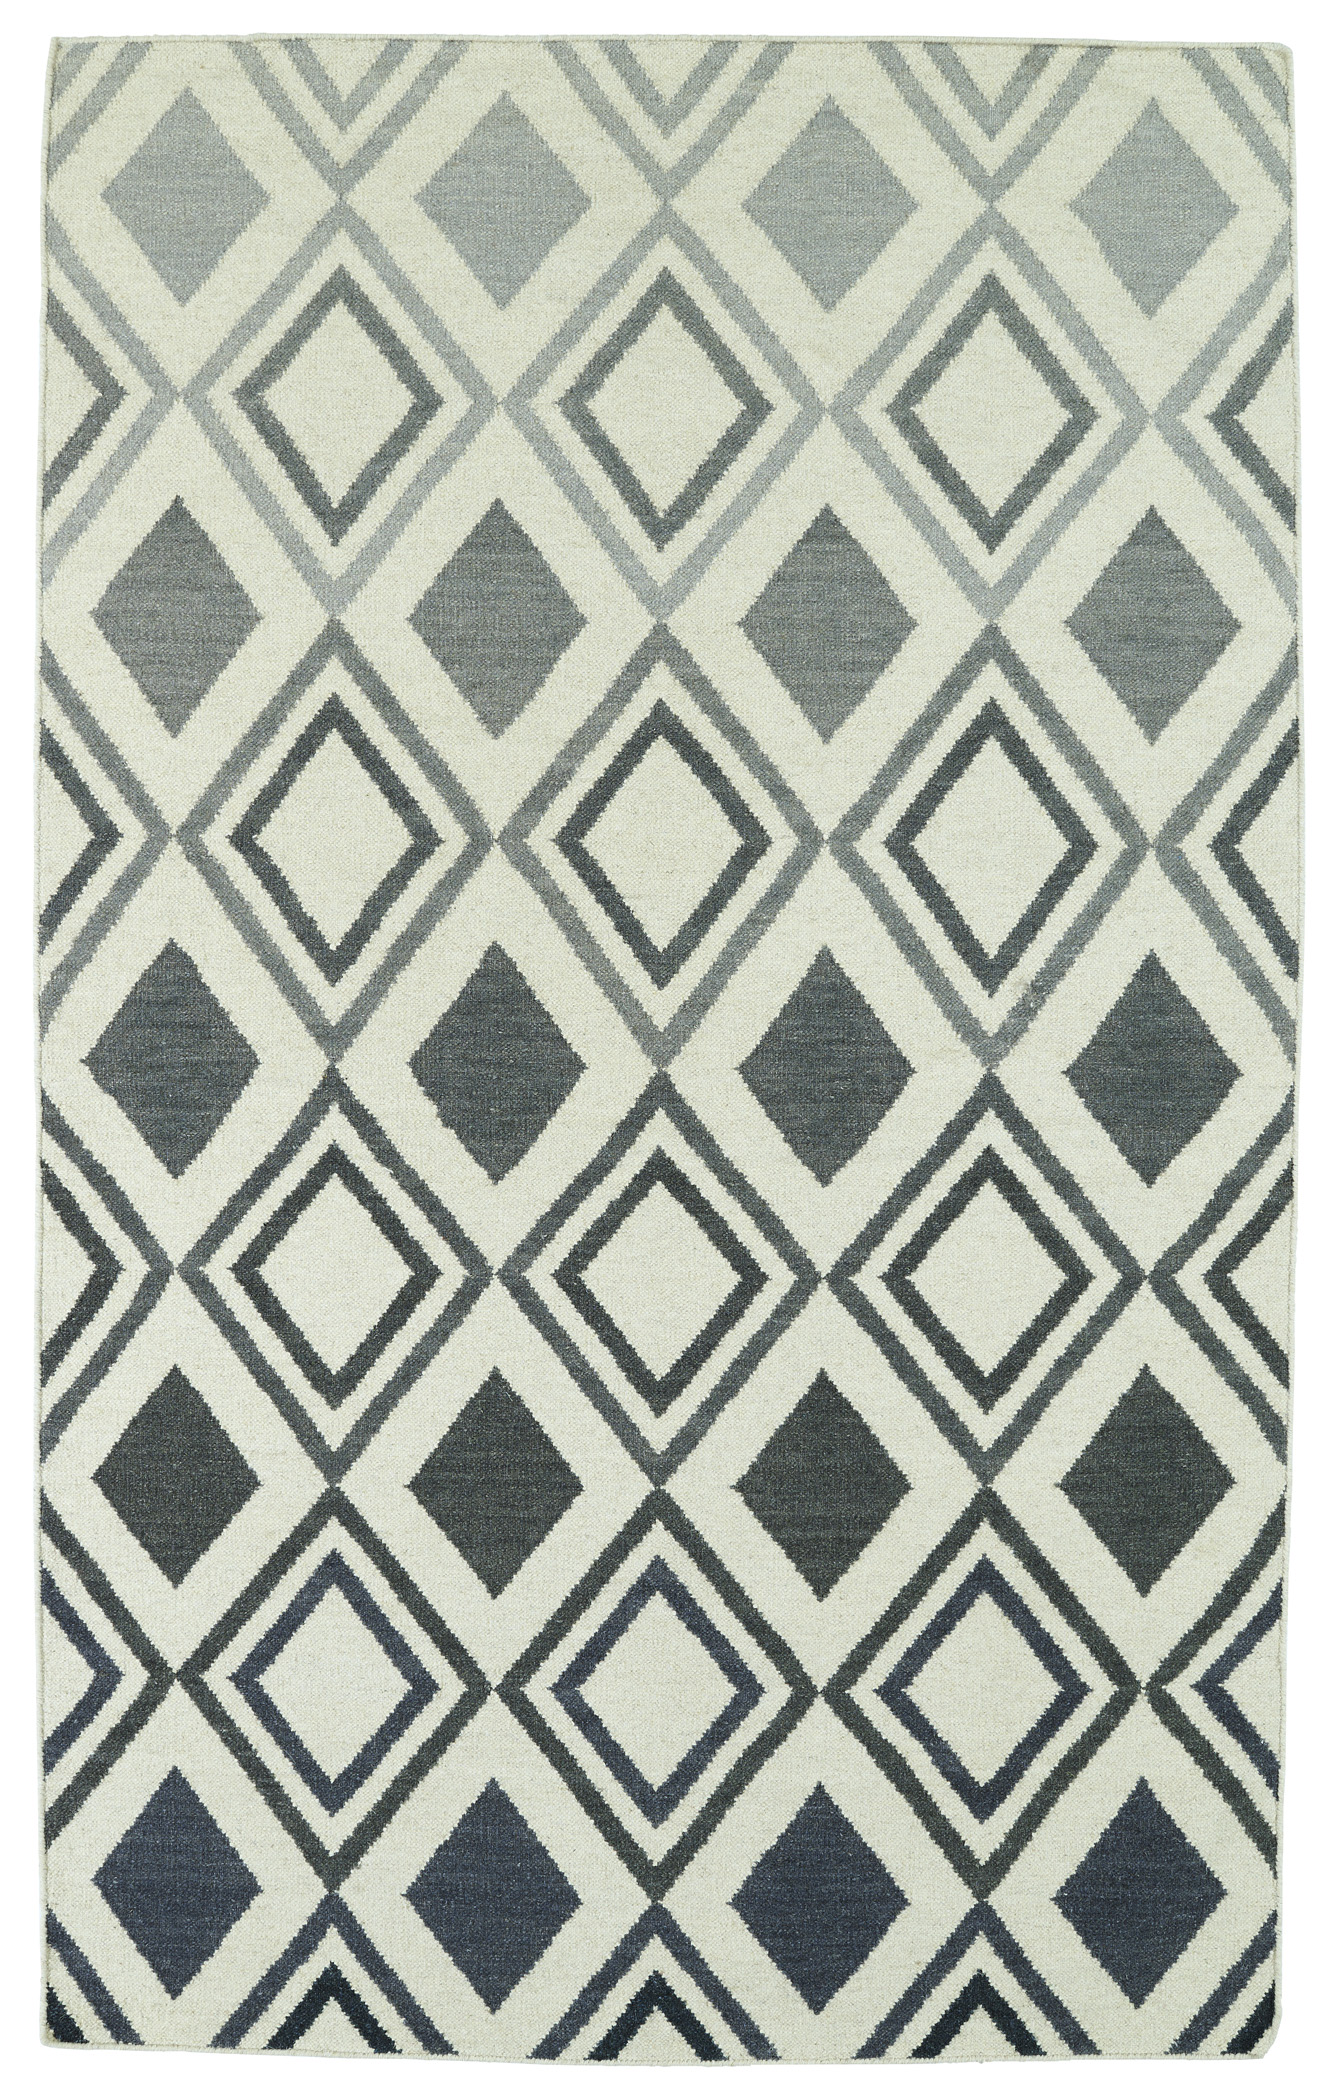 Kaleen Glam GLA09 75 Grey Area Rug